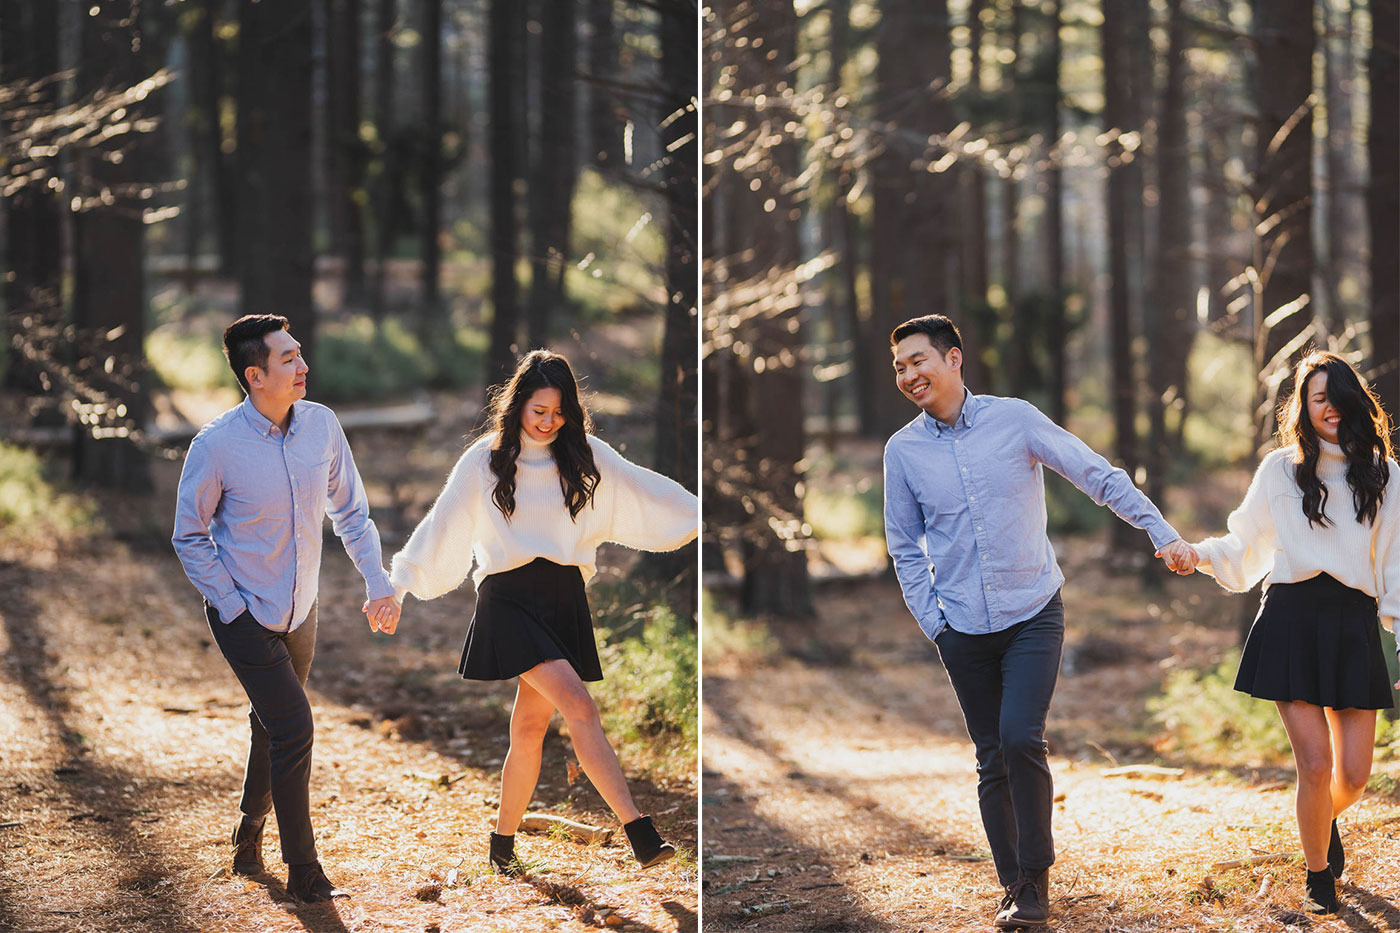 Couple strolling through the park during an engagement session at Prosser Pines by Weddings by Hanel